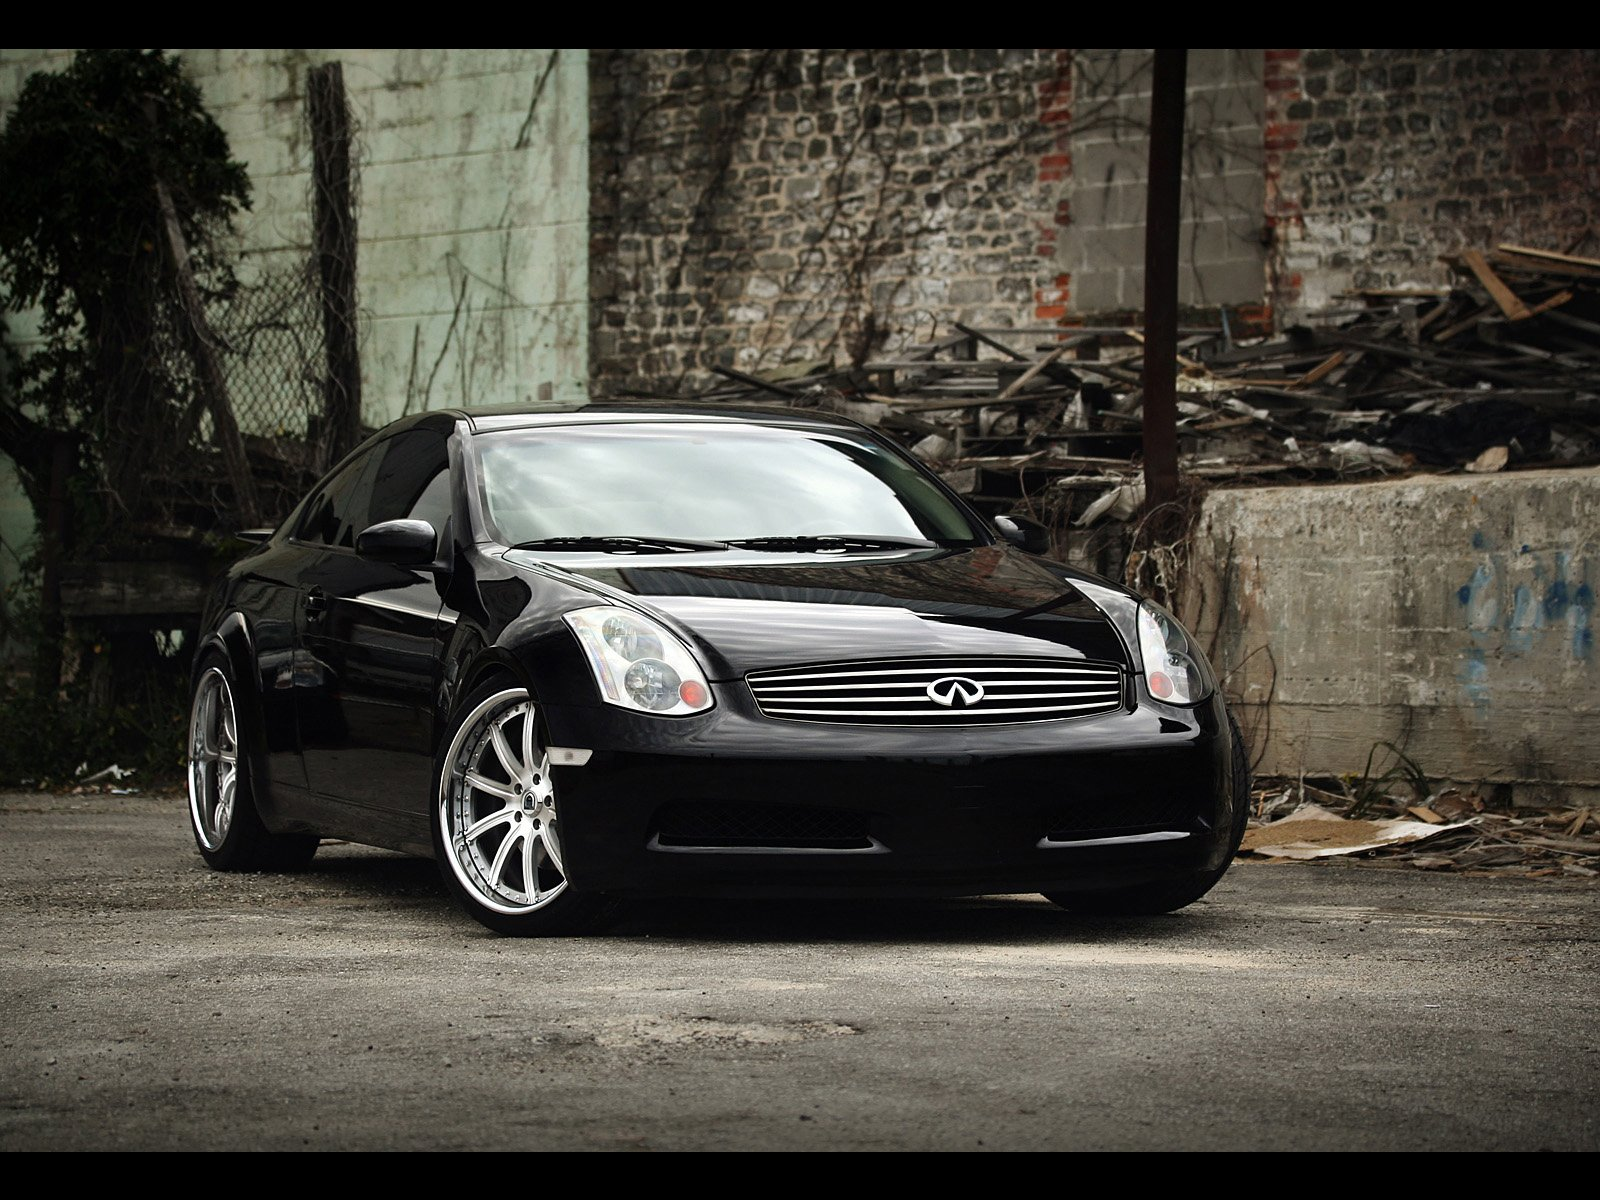 Infiniti G35 Sport Coupe   Photography by Webb Bland 1600x1200